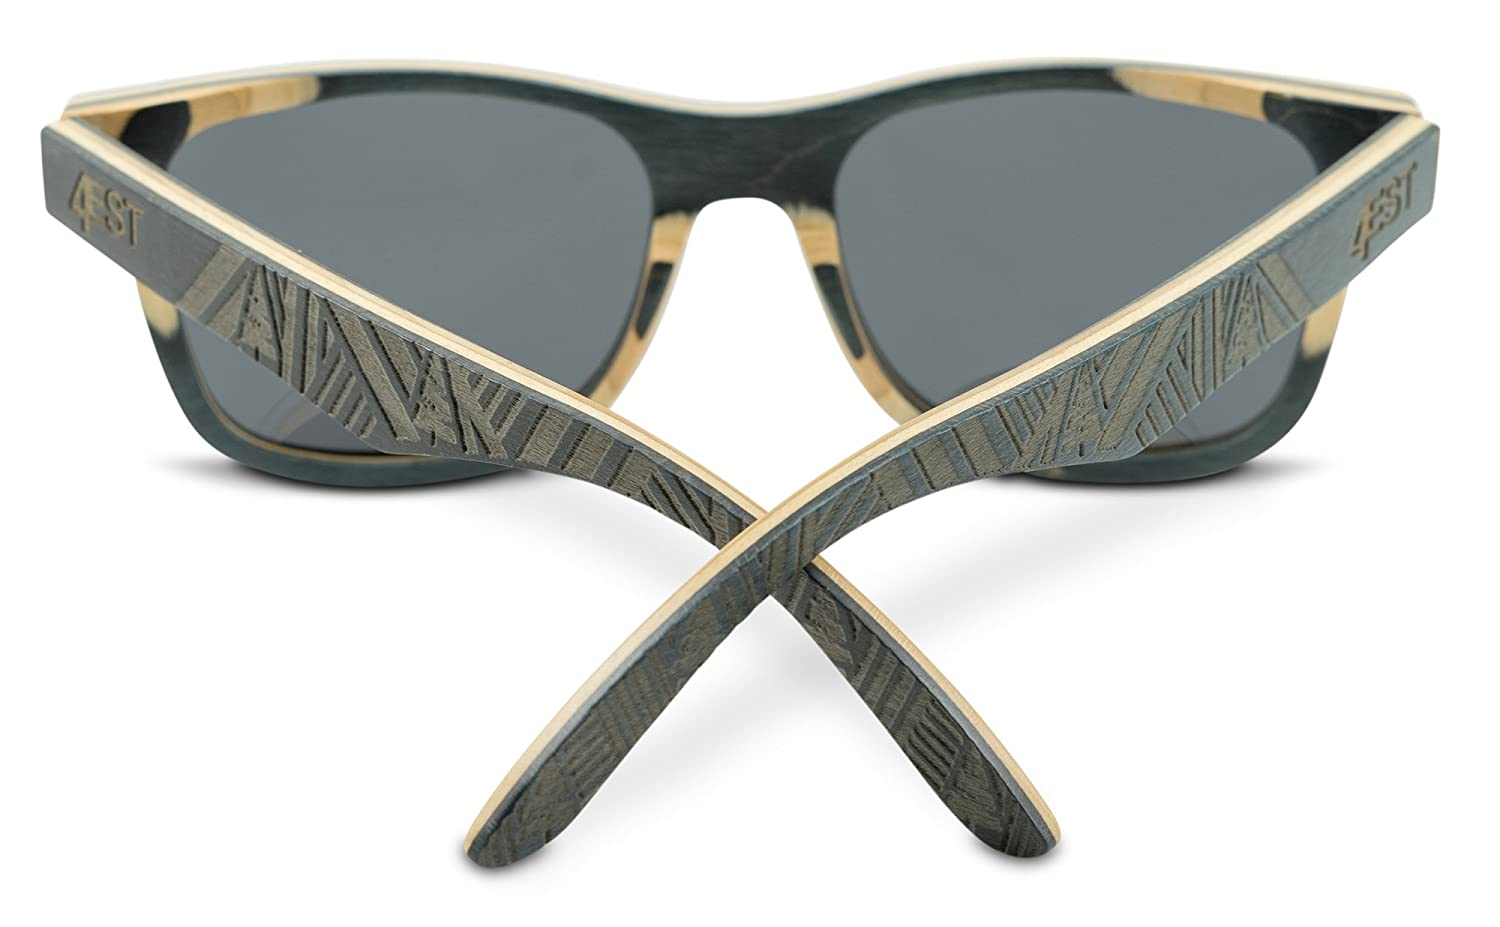 b73b7f4a795 Amazon.com  Wood Sunglasses made from Maple -100% polarized shades that  float  Clothing